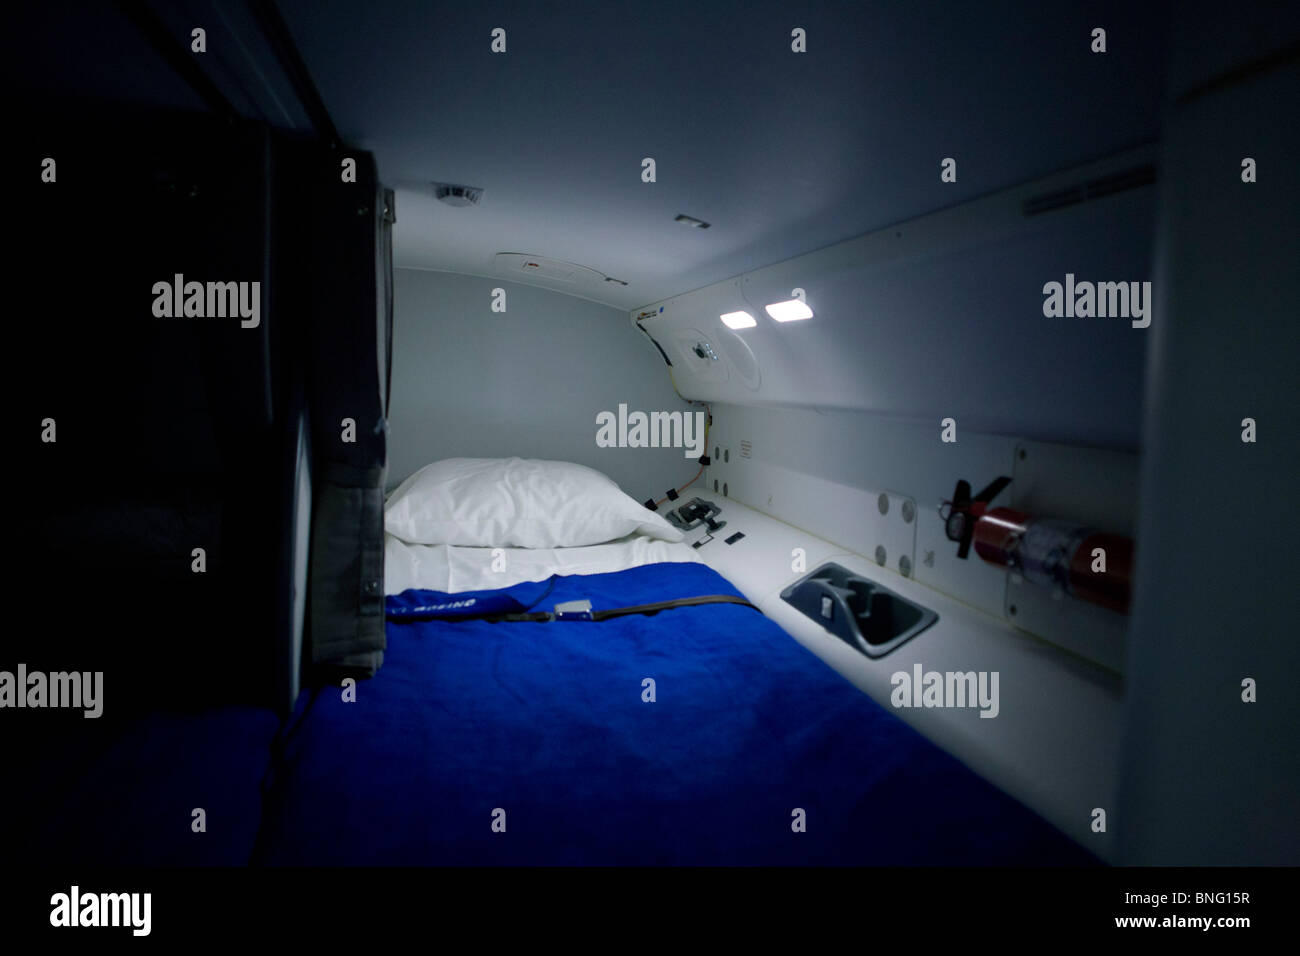 crew-bed-rest-compartment-behind-cockpit